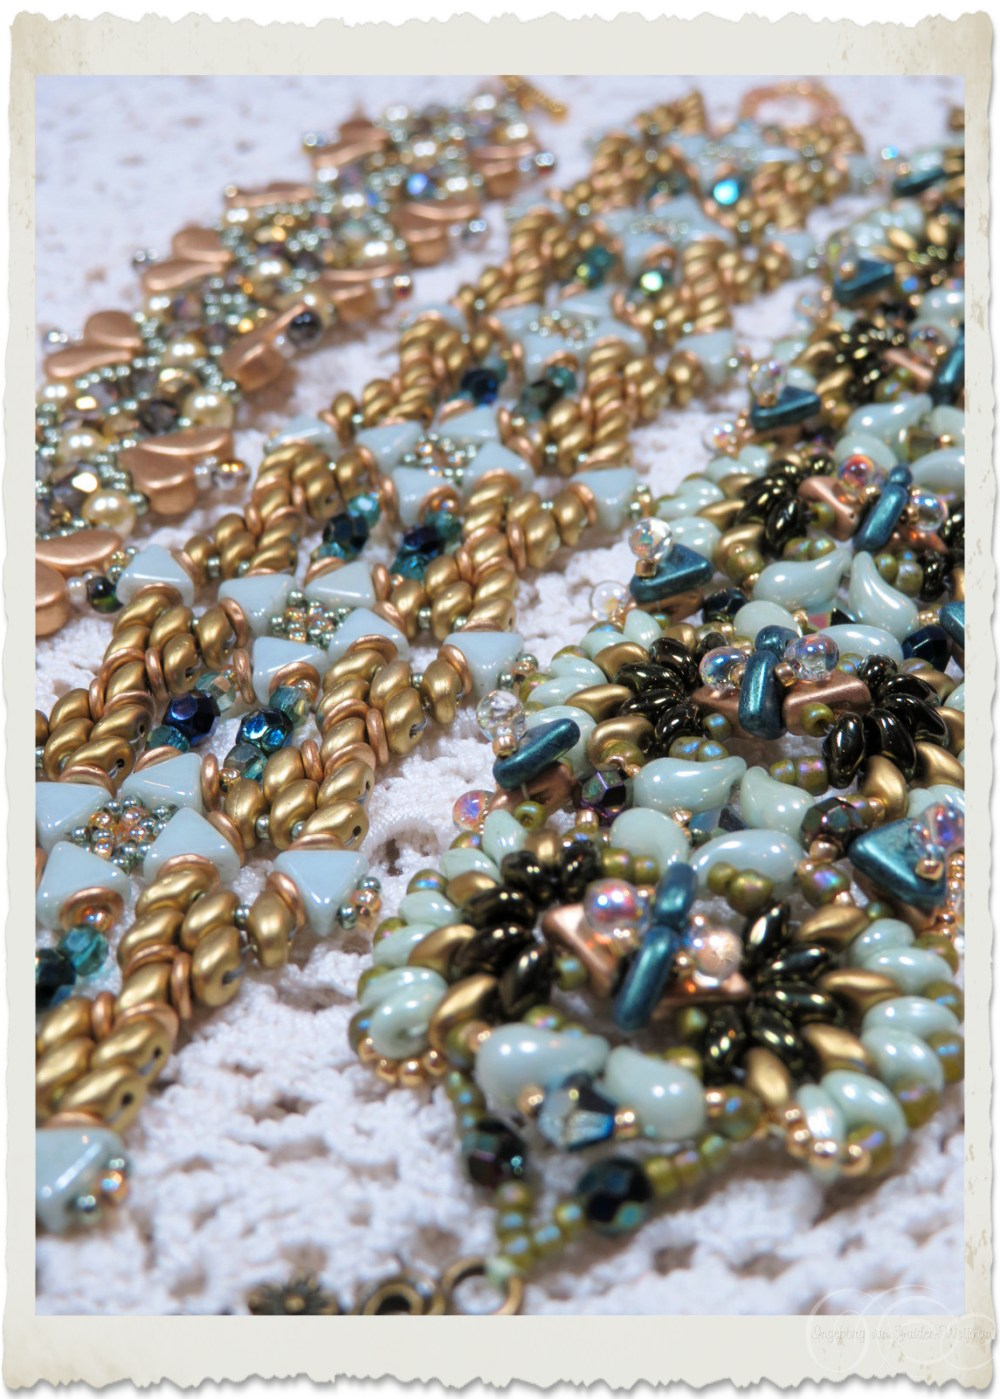 Details of superduo bracelets with Zoliduo and superduo beads